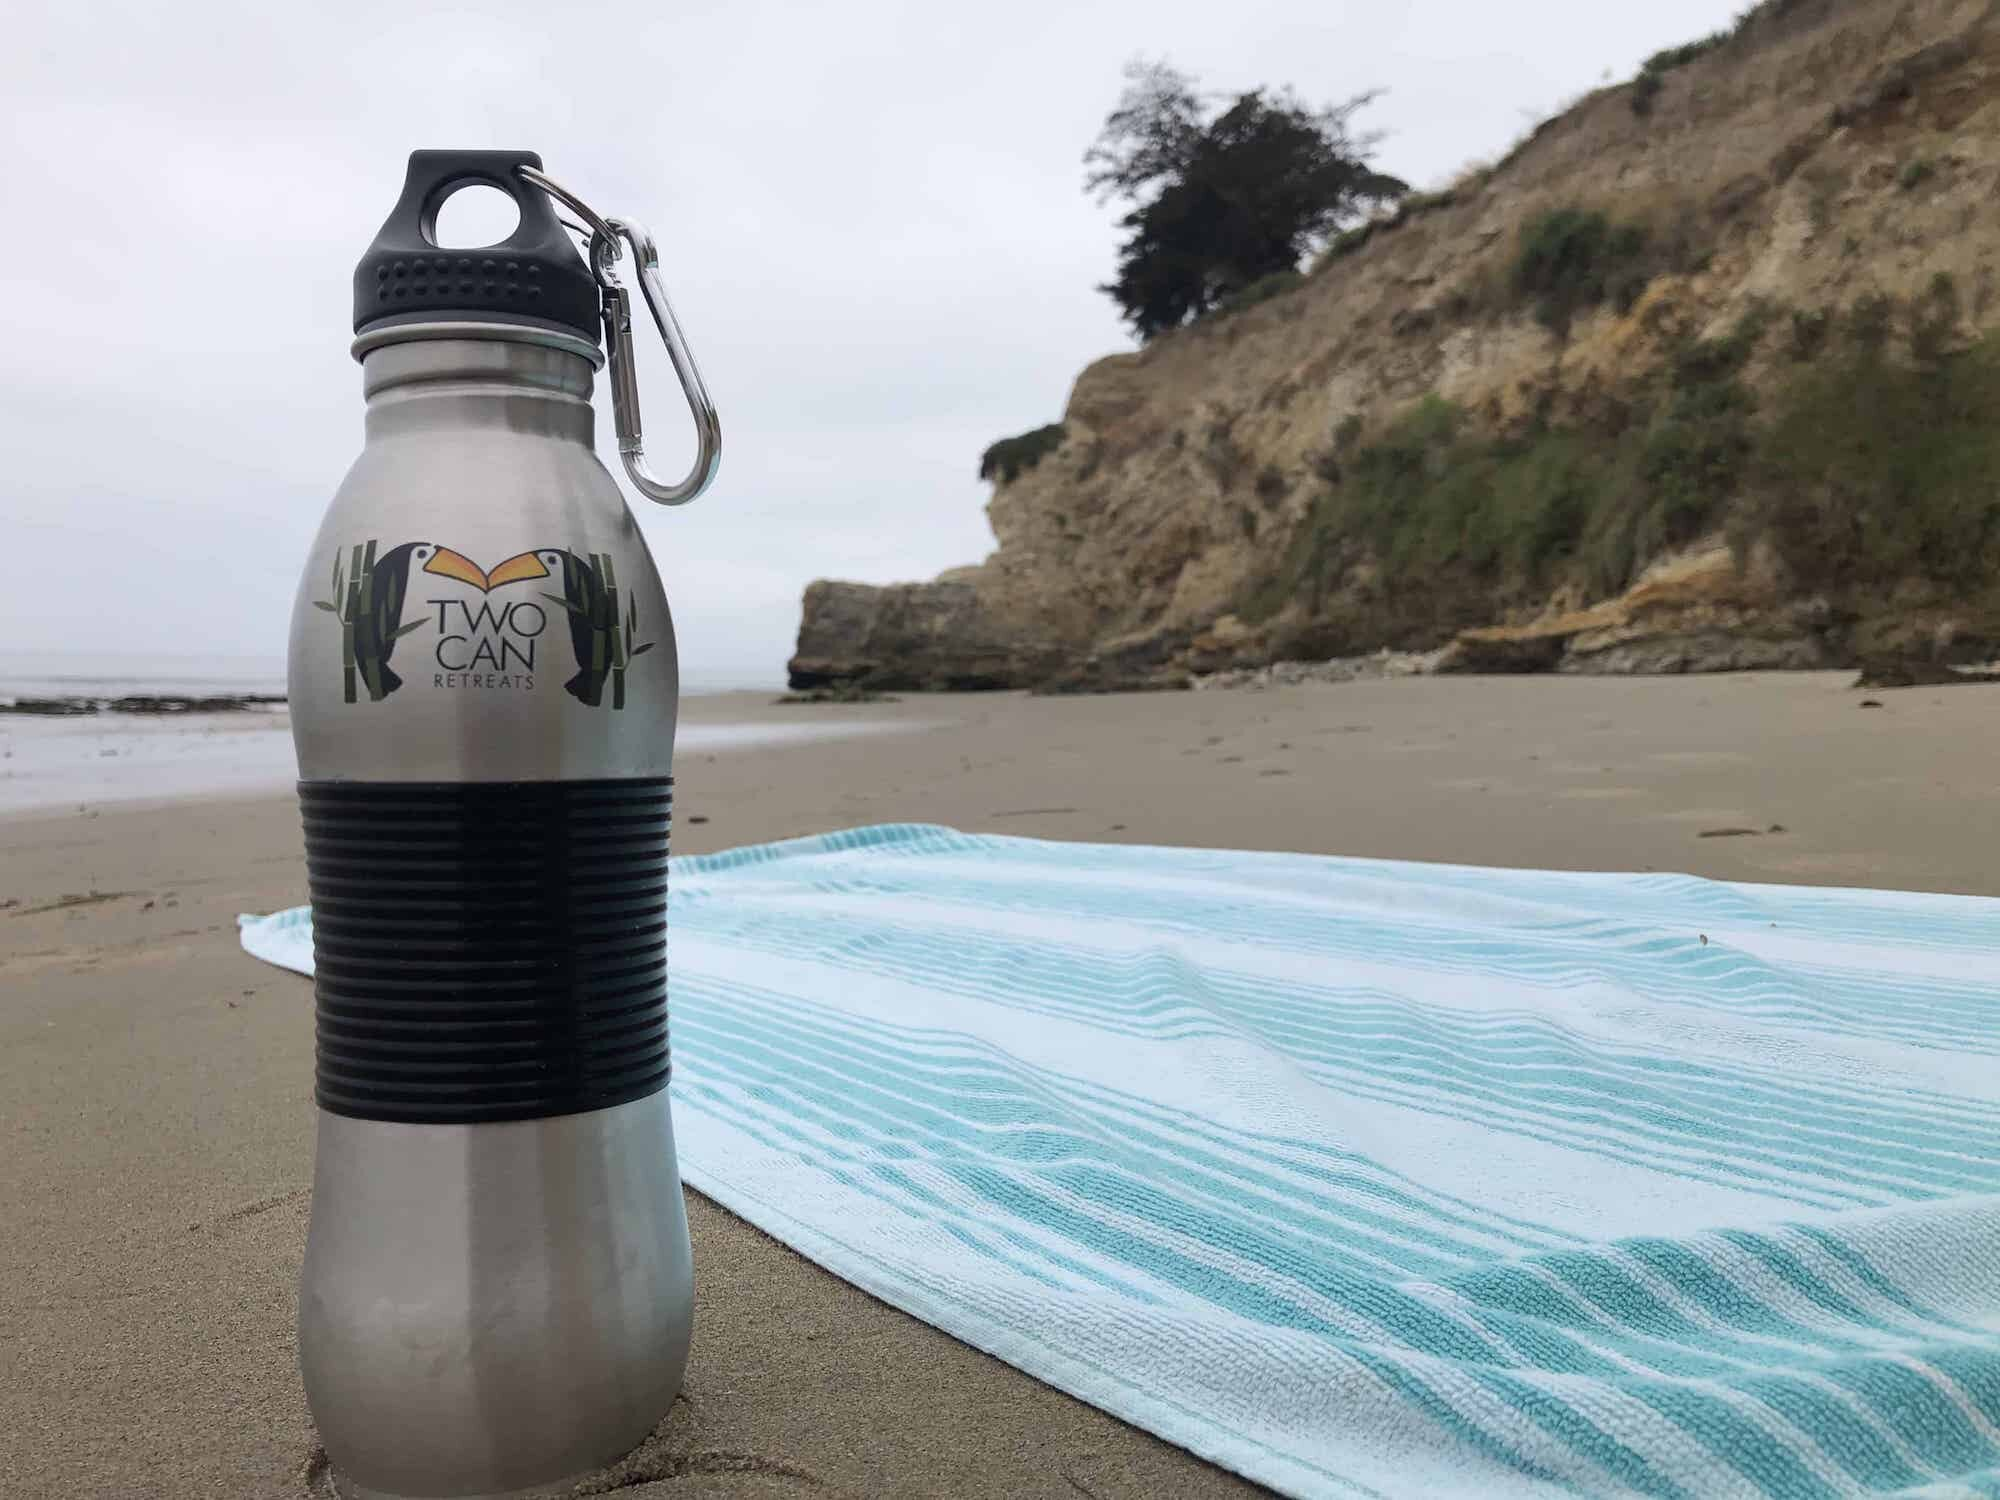 Win a FREE Stainless Steel Water Bottle! - At TwoCan Retreats we're all about fun and adventure, family and community, with a healthy respect for the environment.